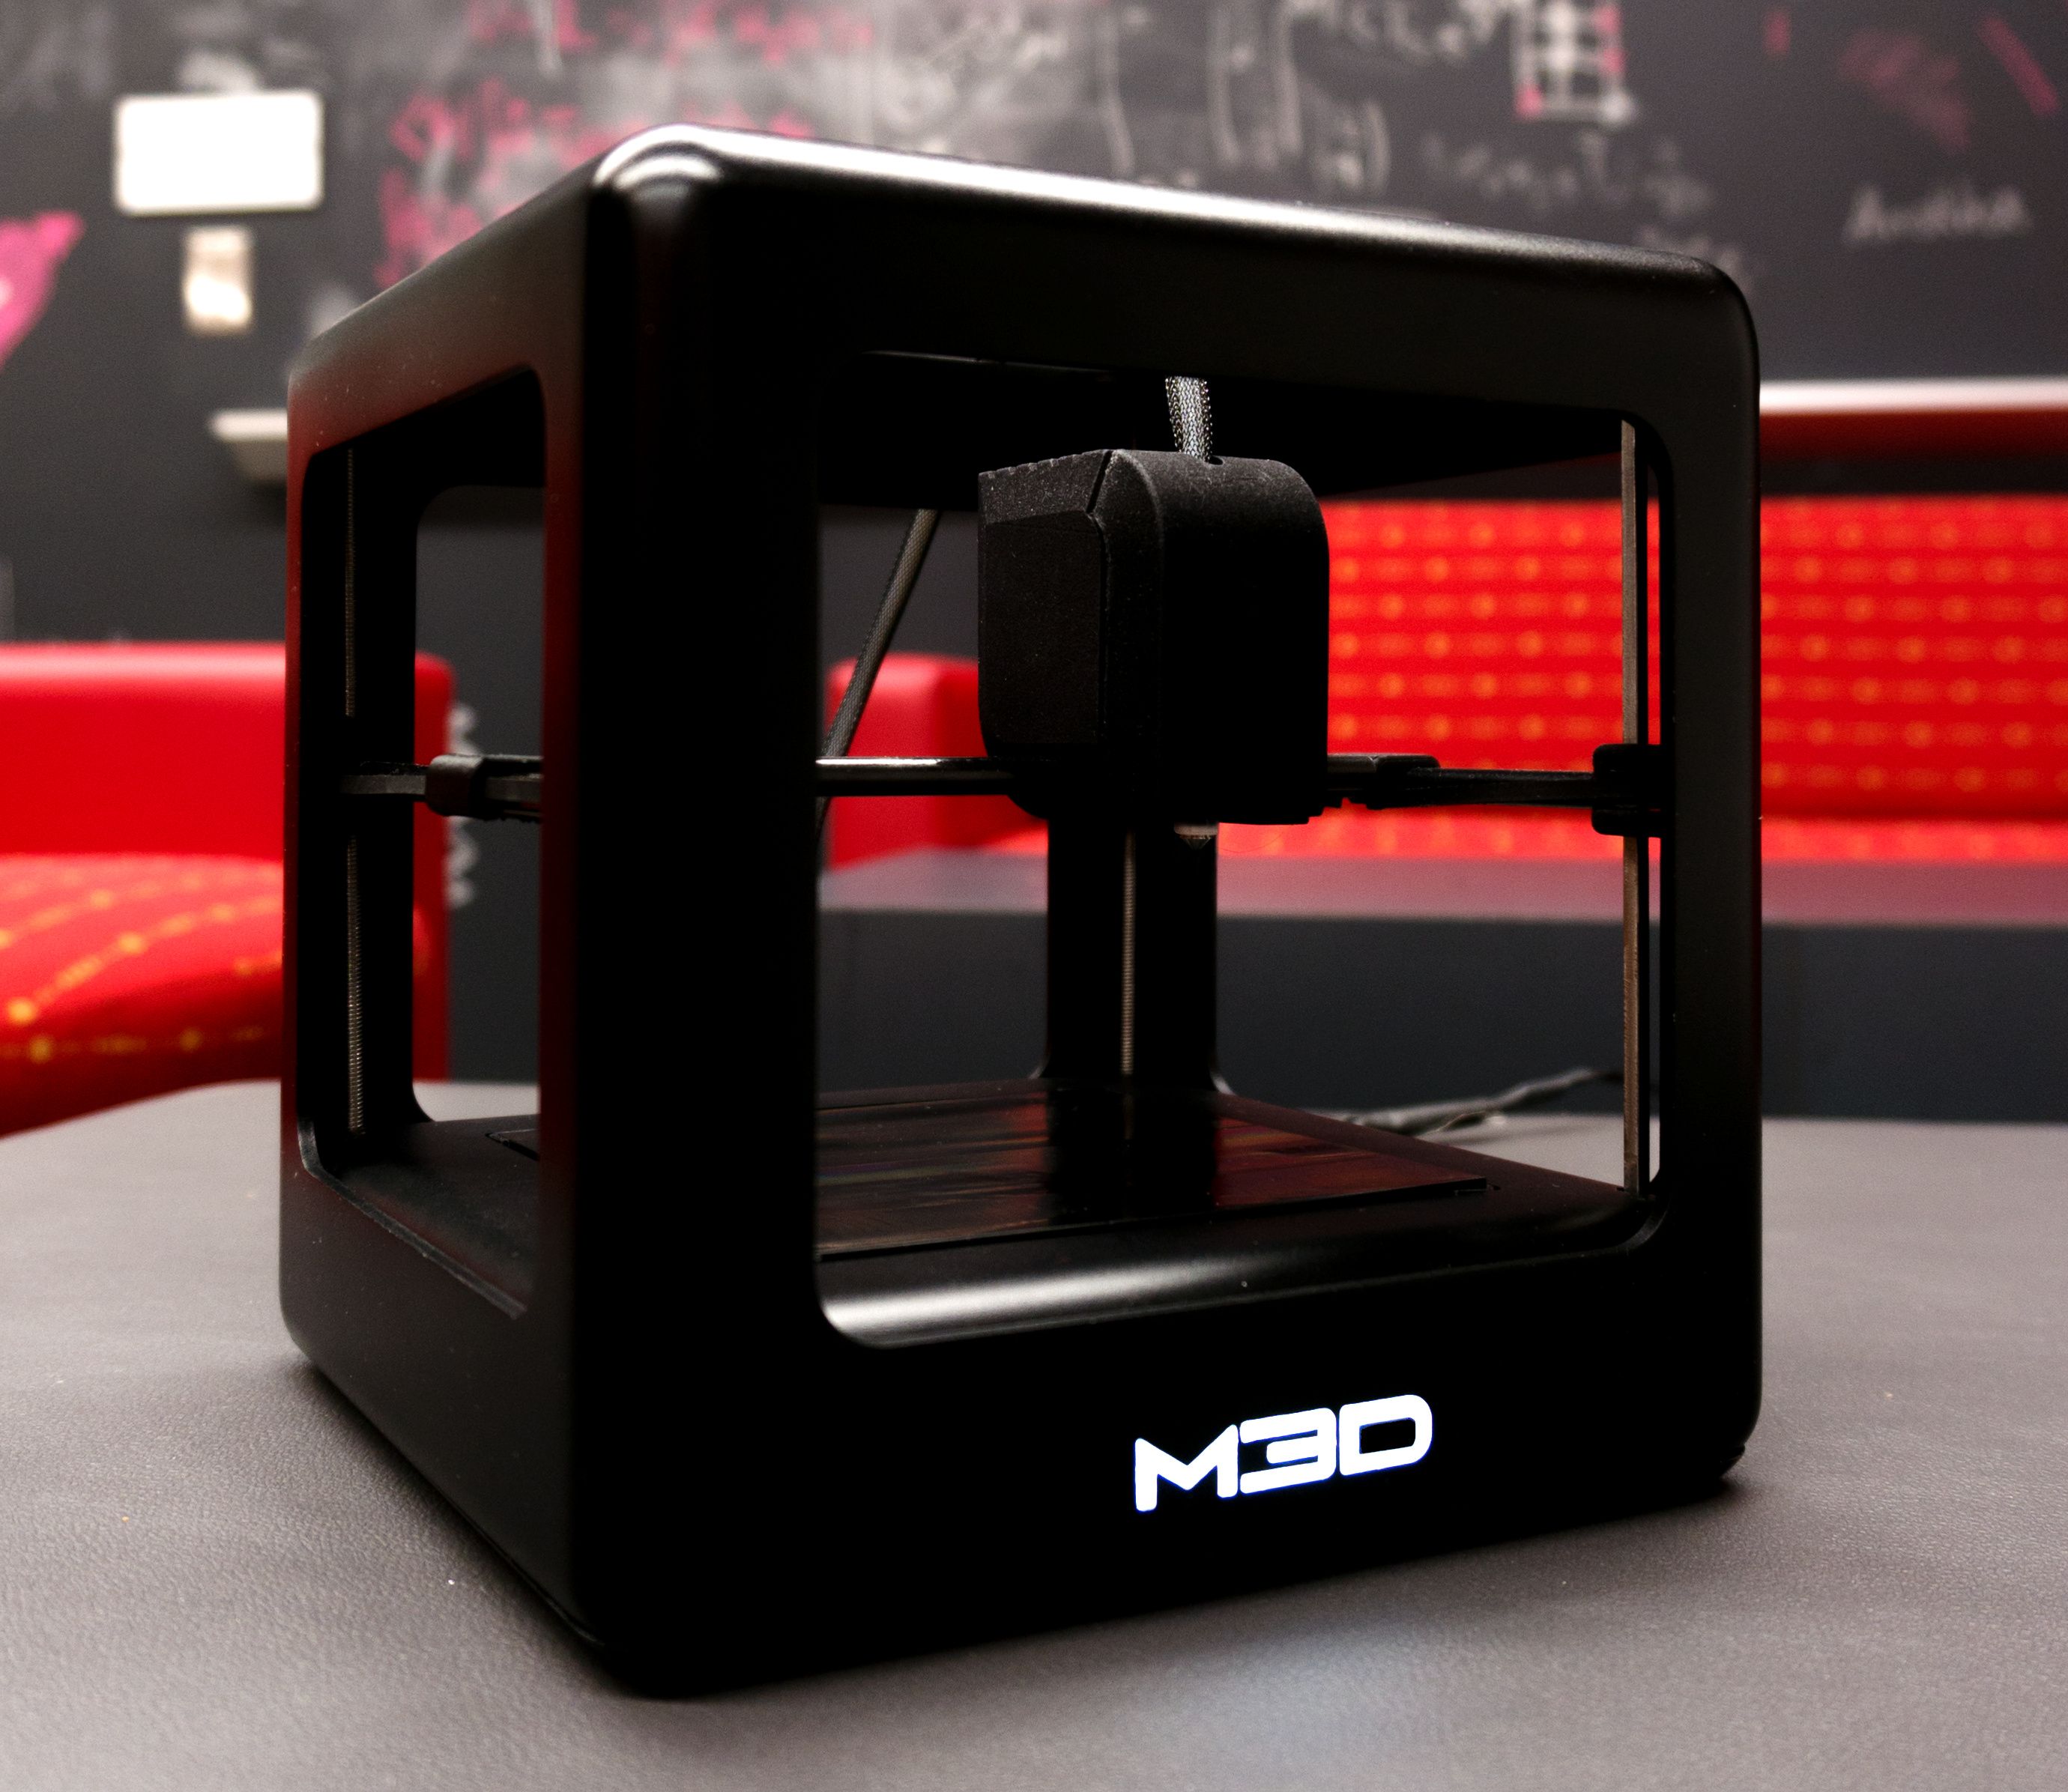 The micro is compact and prints objects up to 4 6 inches tall m3d